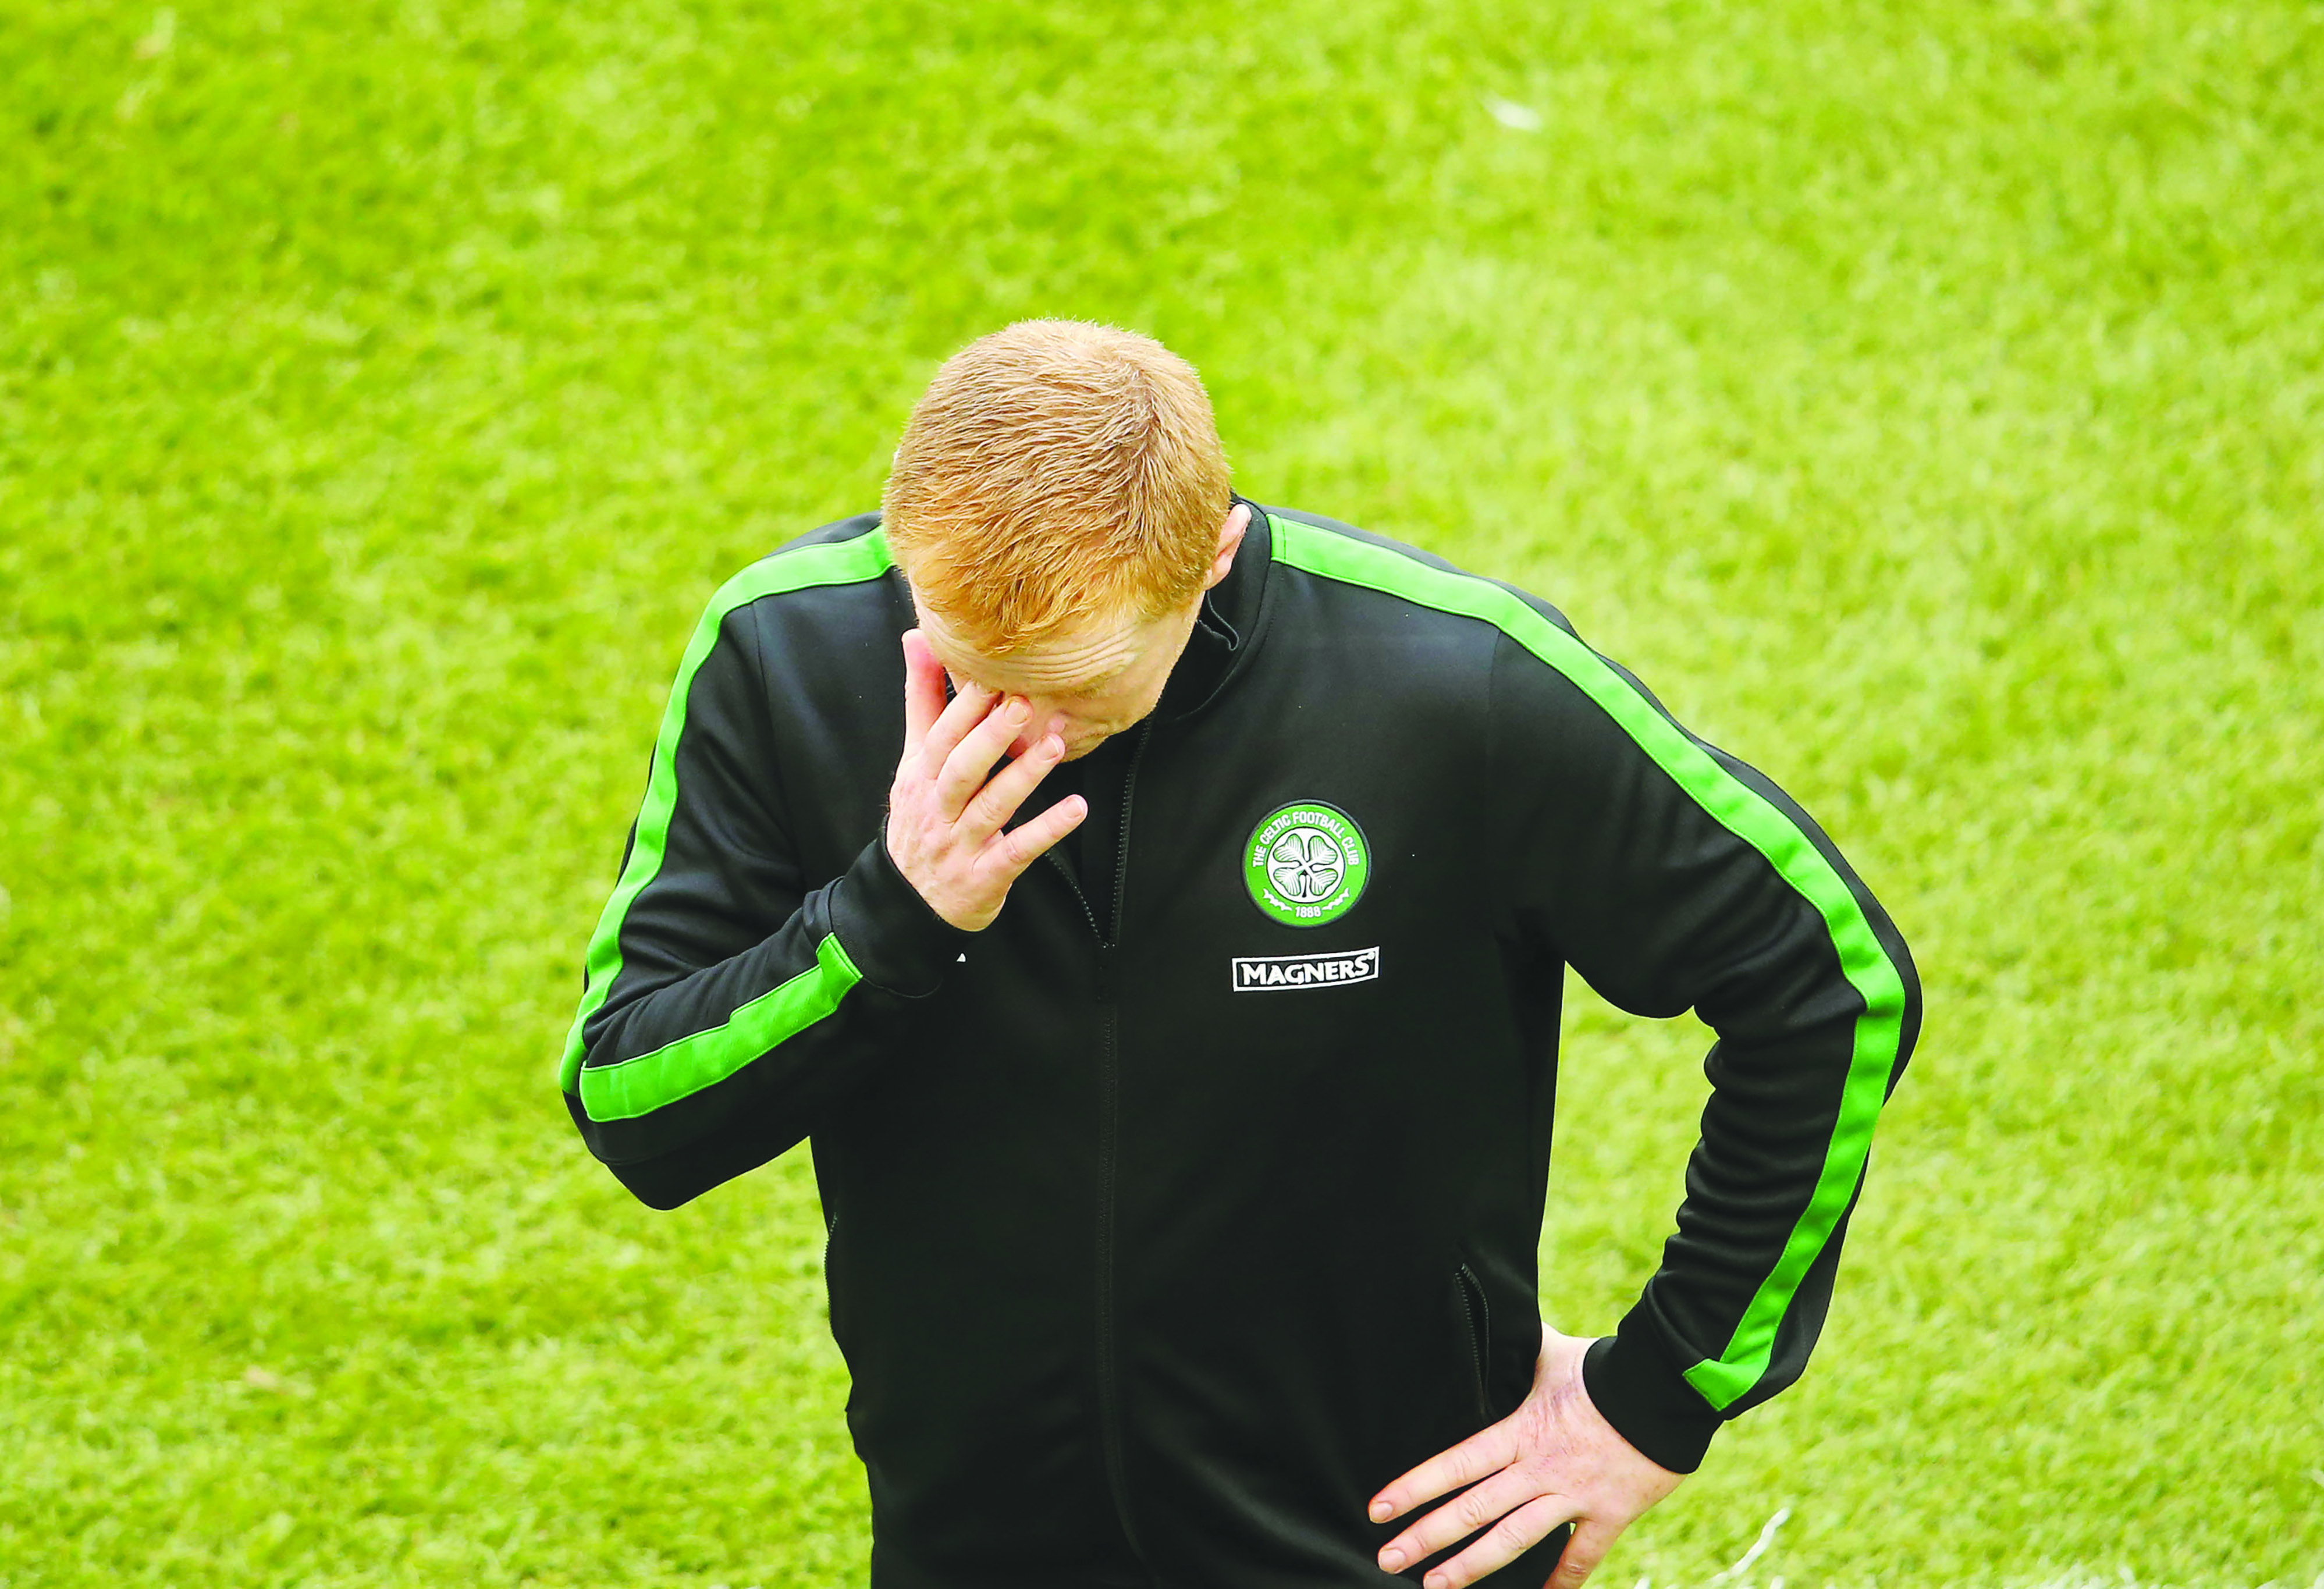 Celtic's performance on Saturday has raised further questions as to Neil Lennon's ability to lead the club to 10-in-a-row